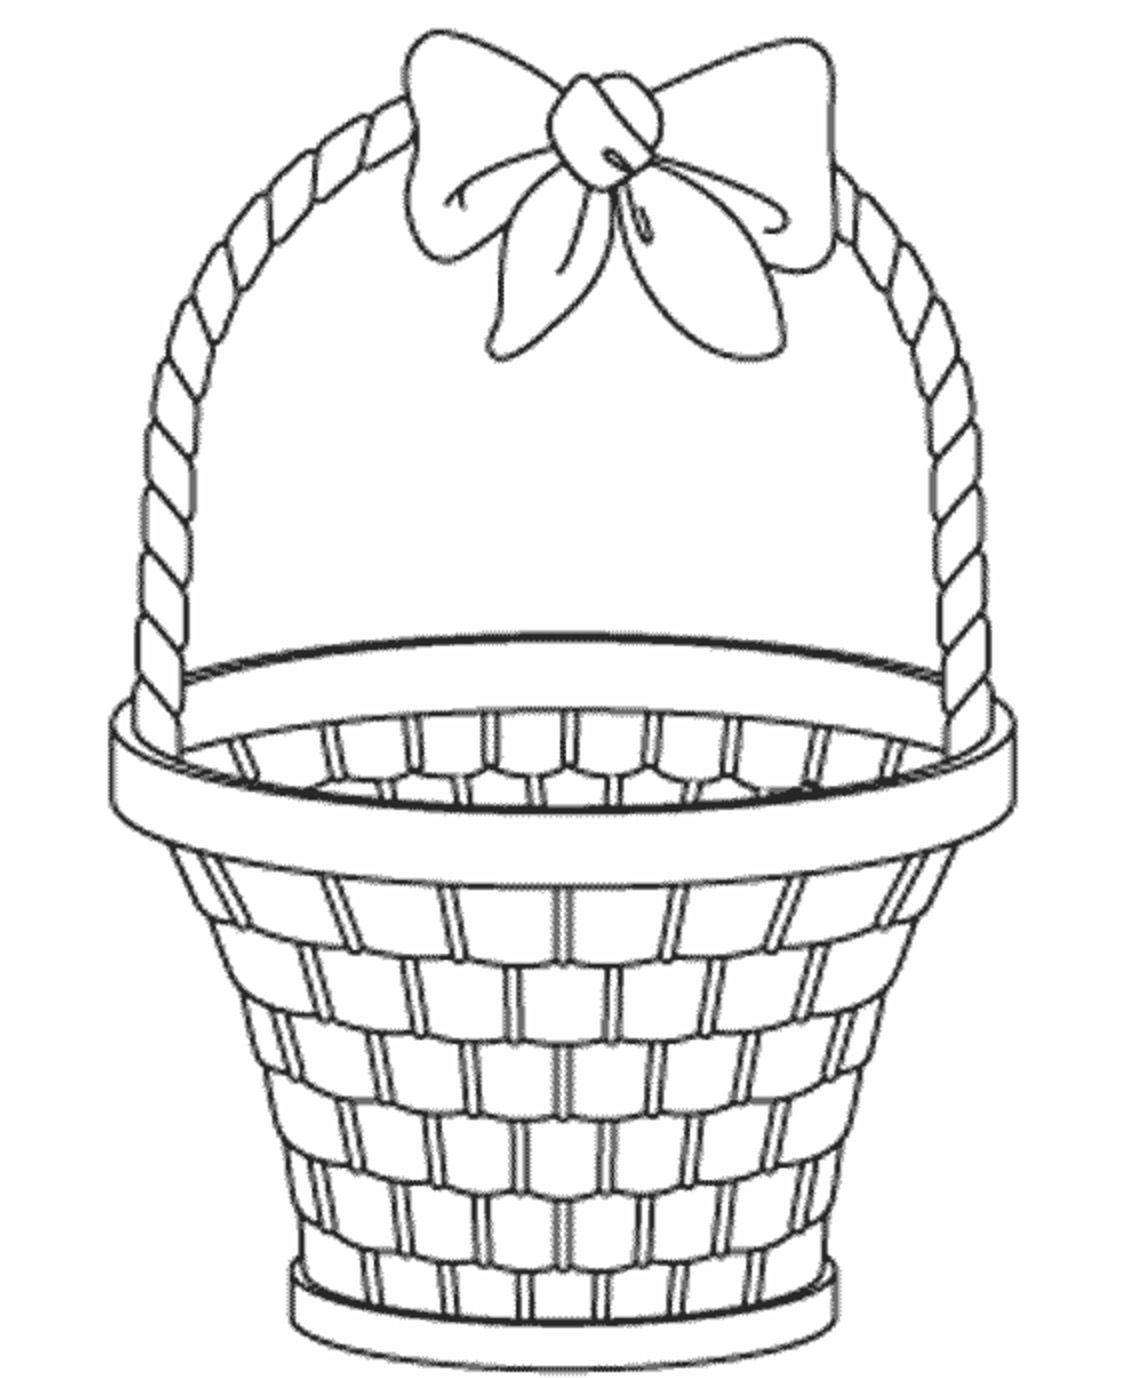 Empty Easter Basket Coloring Page 8